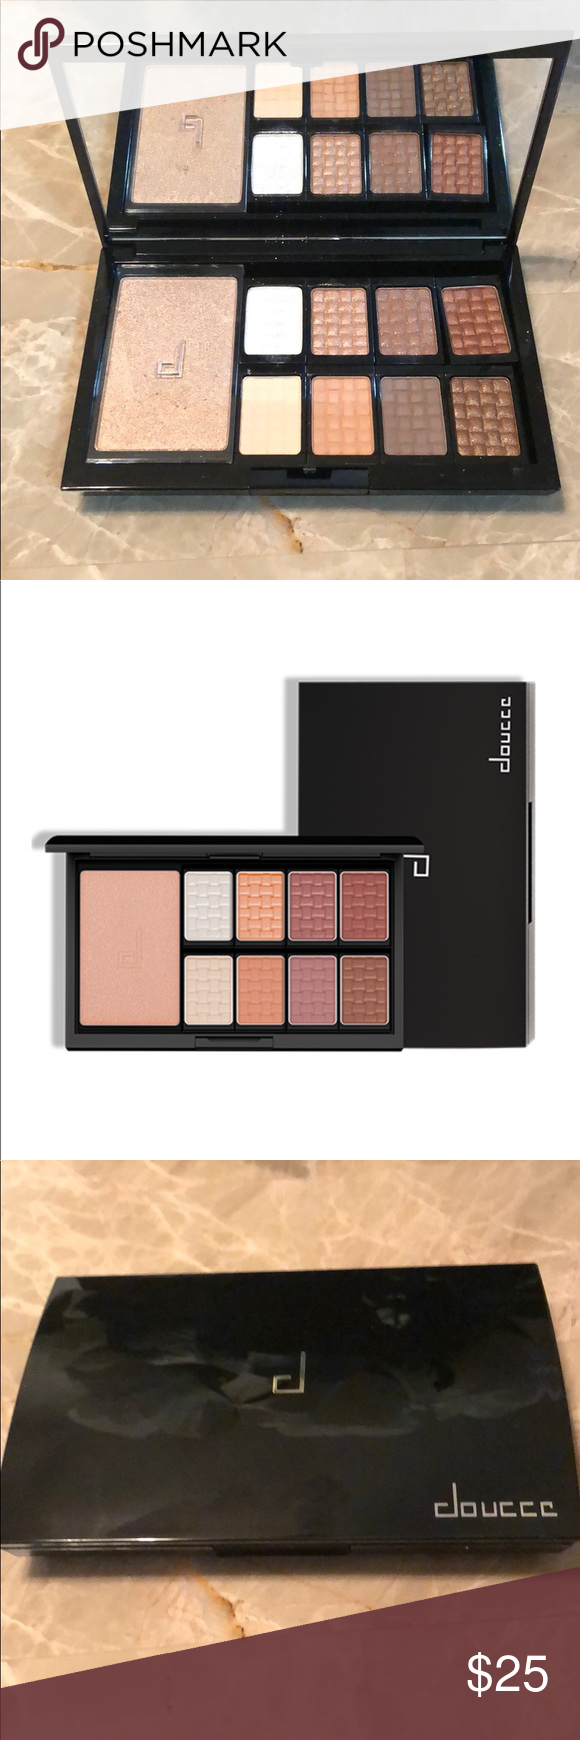 Doucce Makeup   Doucce Freematic Pro Palette Nude Eye